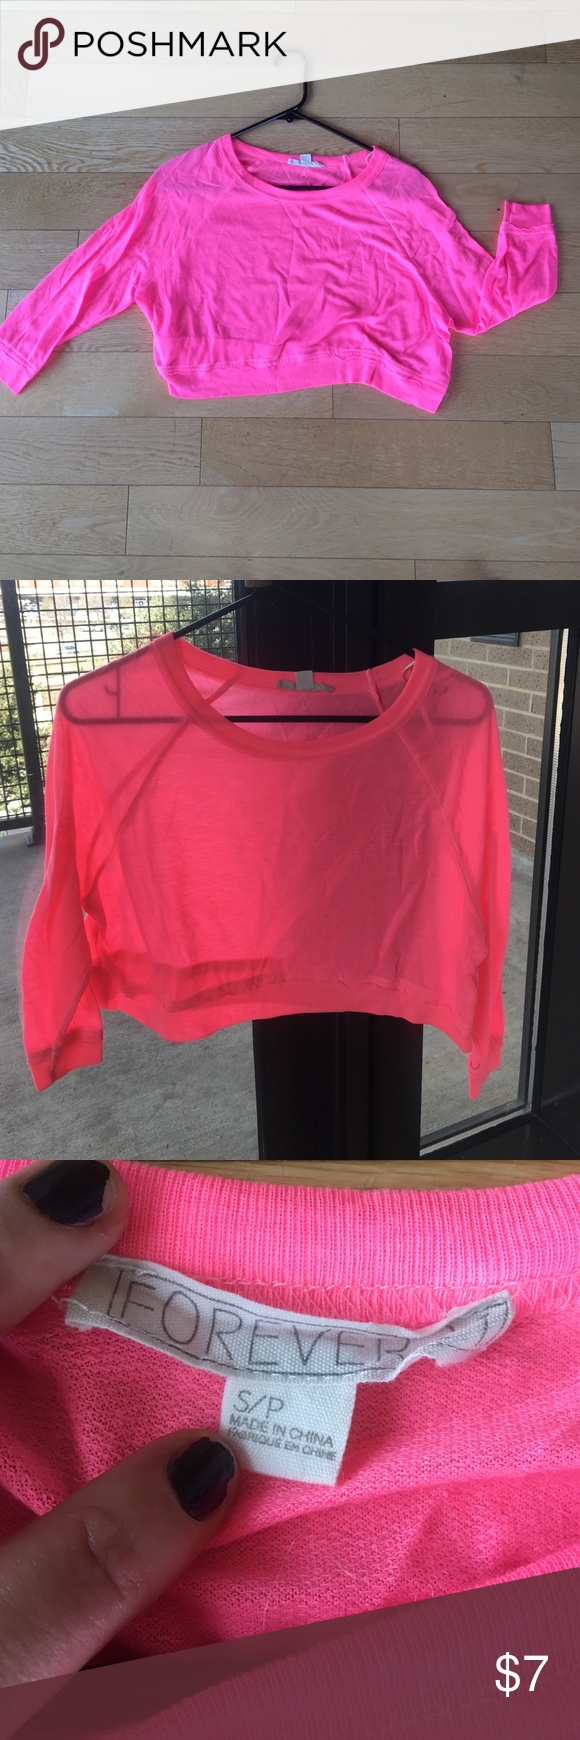 Forever 21 Neon Pink crop top Soft 3/4 sleeve neon pink crop top Forever 21 Tops Crop Tops